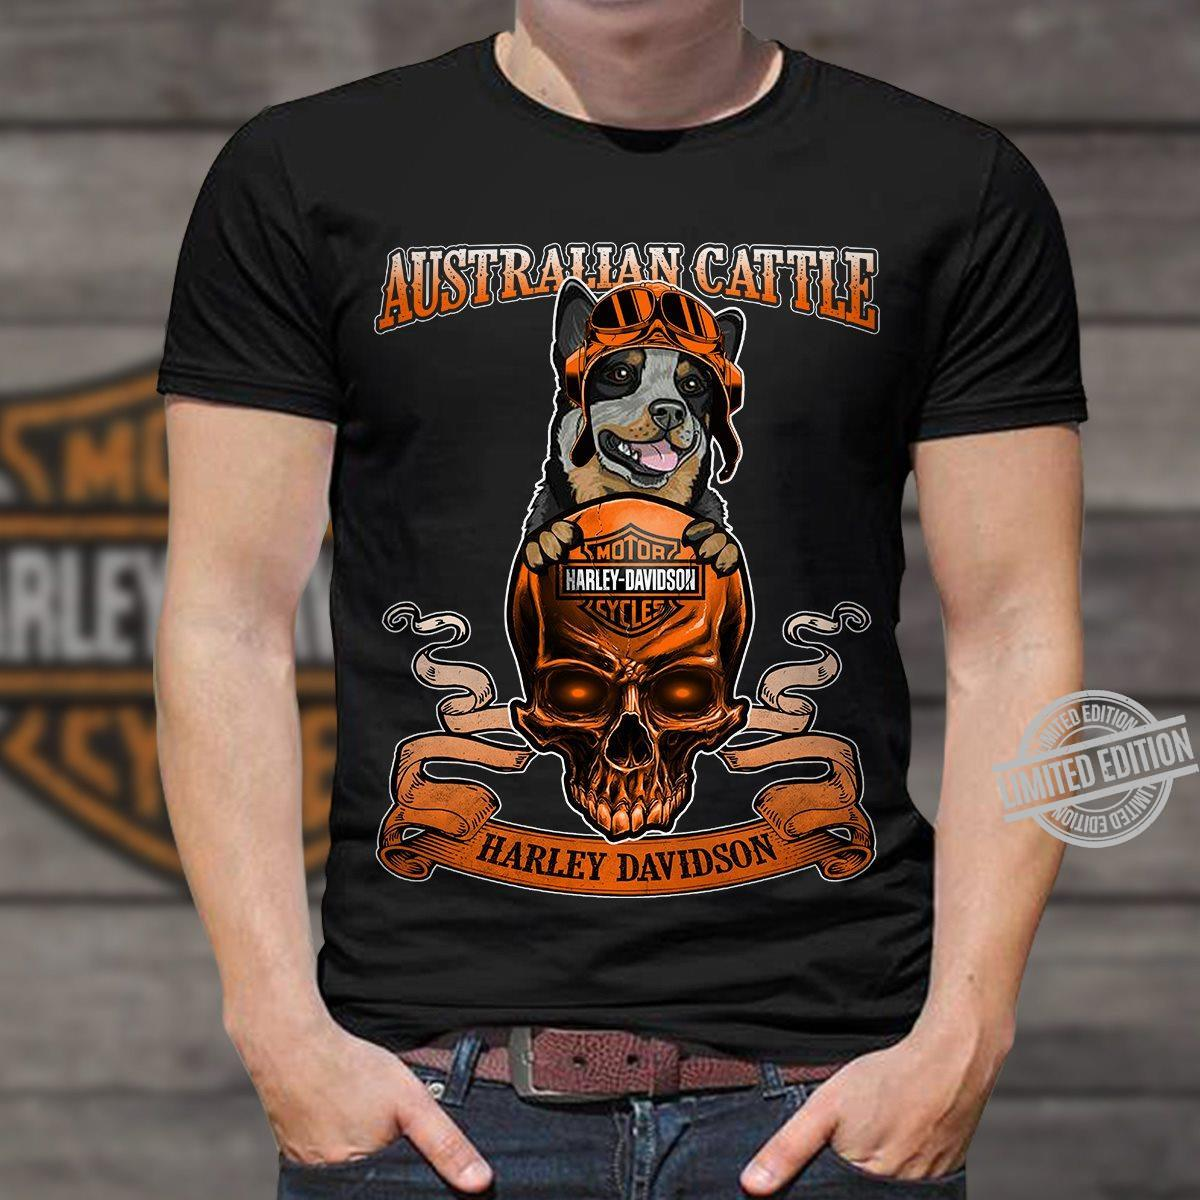 Harley Davidson Motorcycles And Australian Cattle Shirt